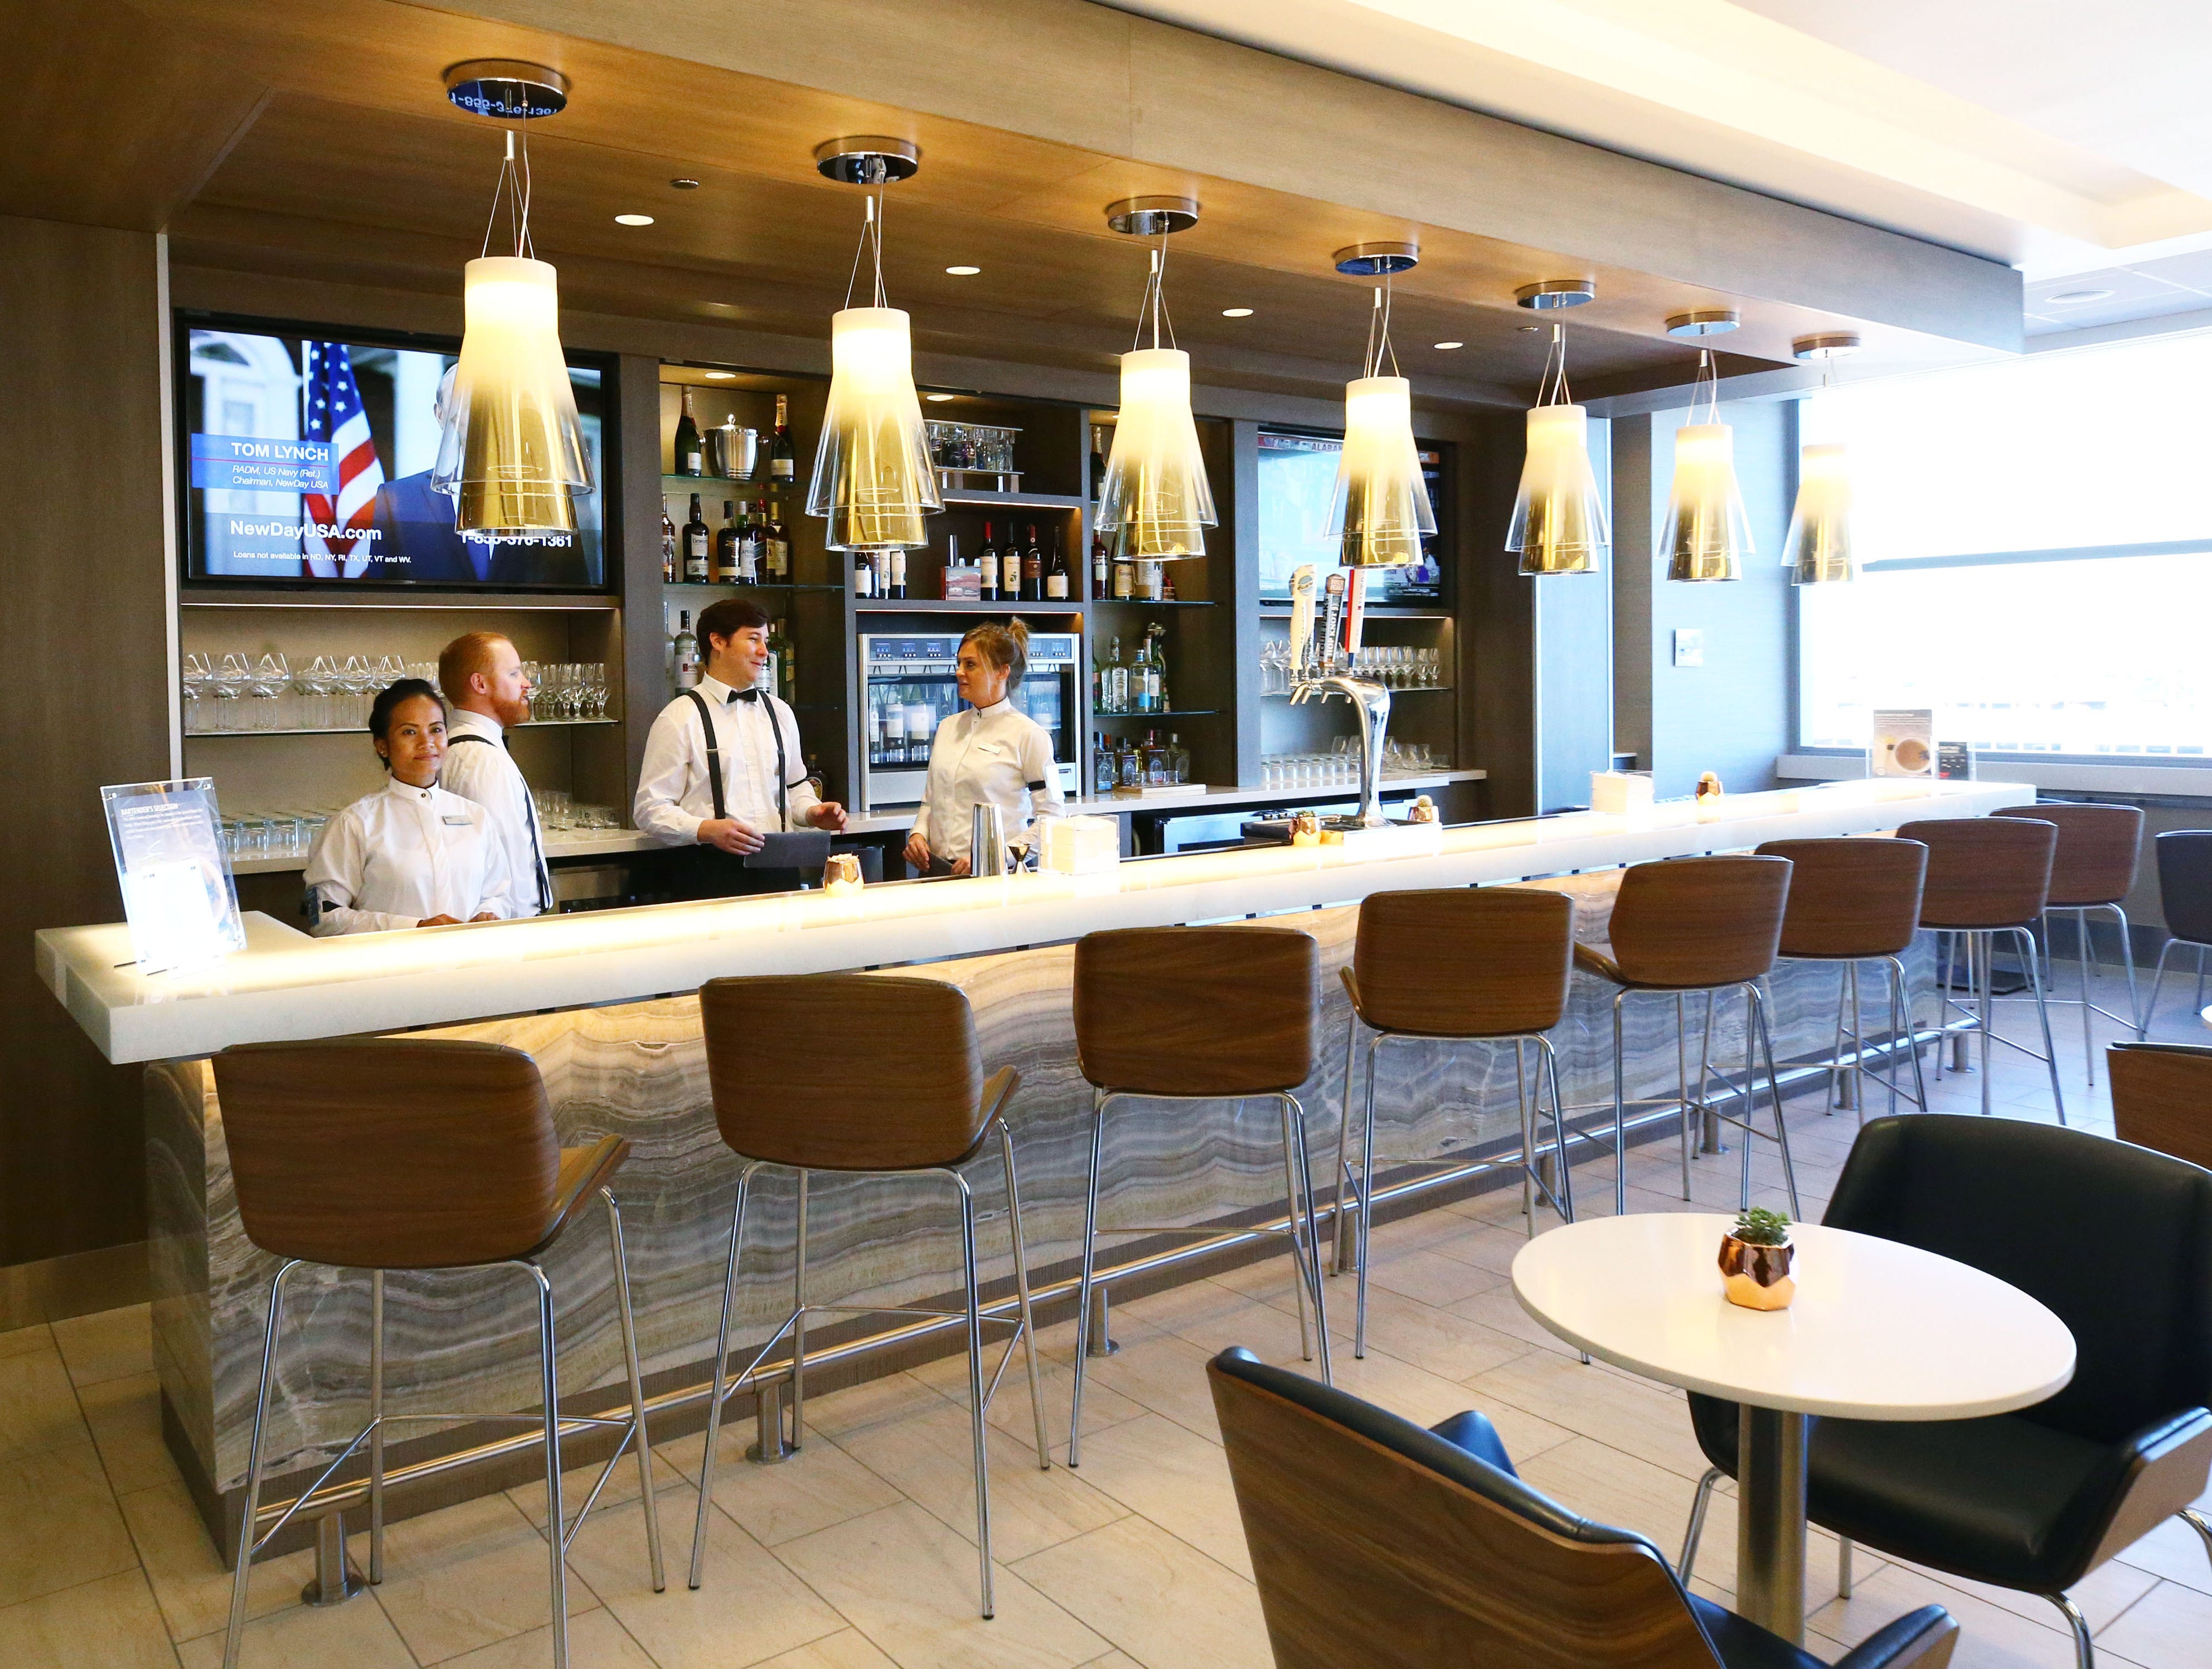 Delta Sky Club in the new John S. McCain III Terminal 3, South Concourse during opening ceremonies on Monday, Jan. 7, 2019 at Phoenix Sky Harbor International Airport.